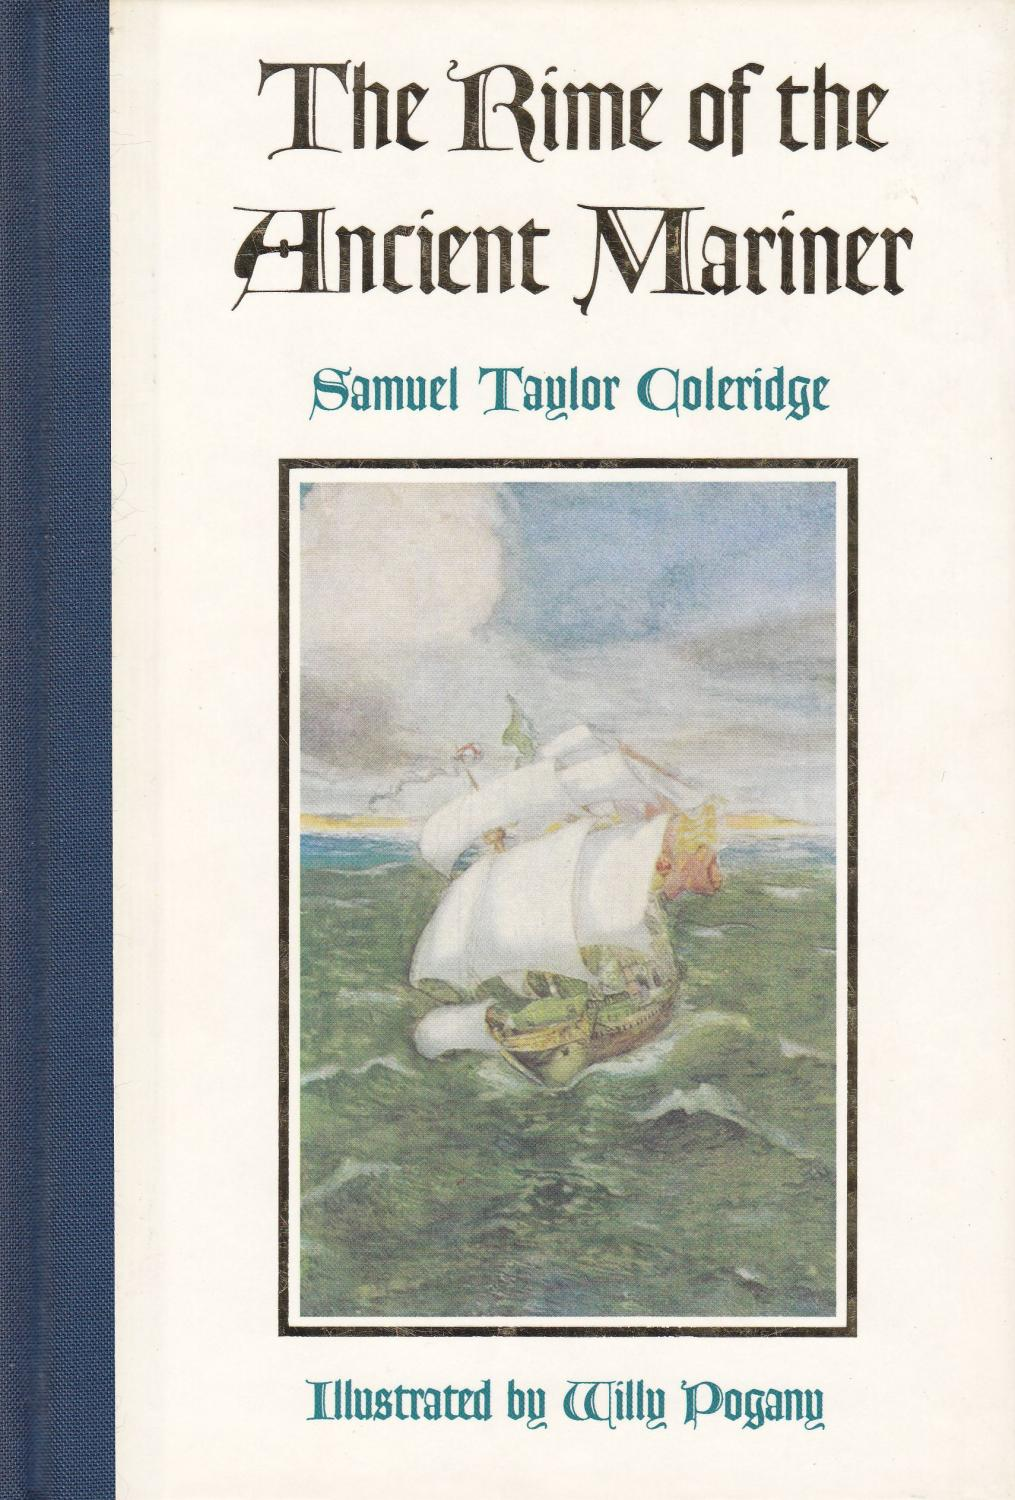 The rime of the ancient mariner by coleridge willy pogany abebooks biocorpaavc Images